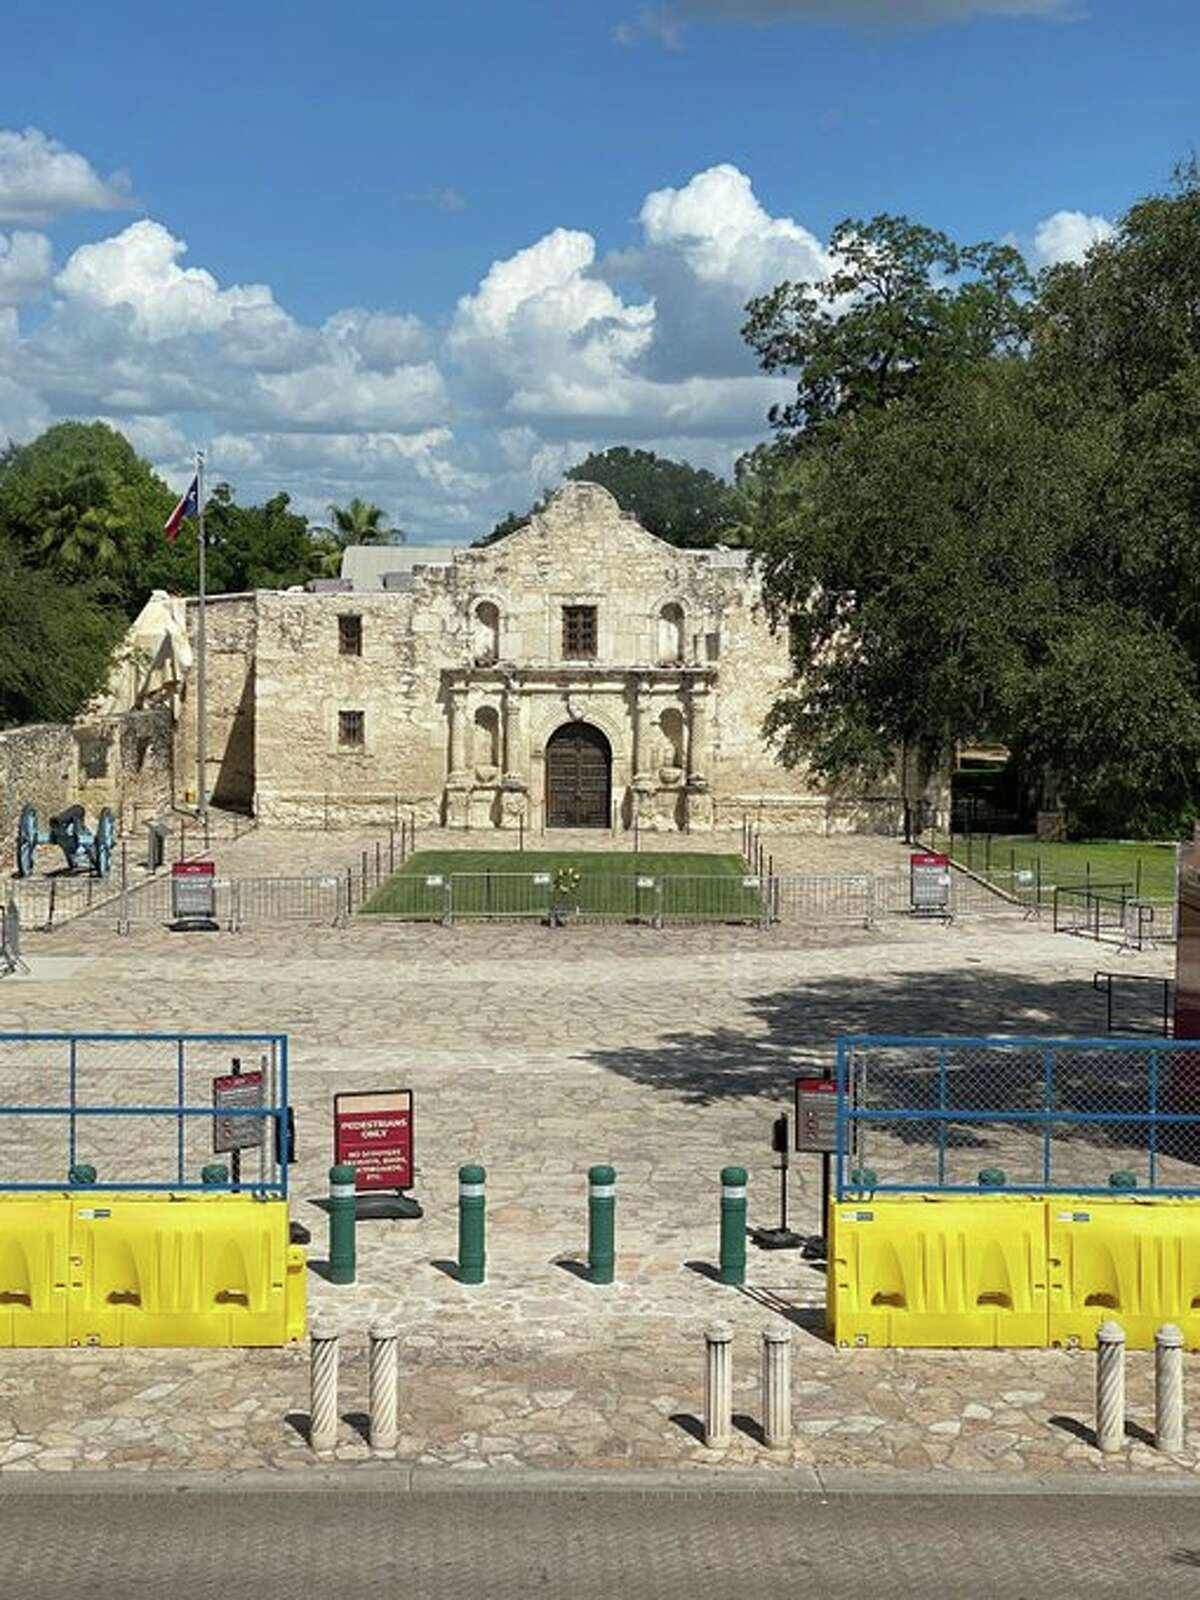 Alamo Plaza has reopened for the first since June, the historical site announced Monday on Twitter. The Alamo, however, will remain closed until further notice.